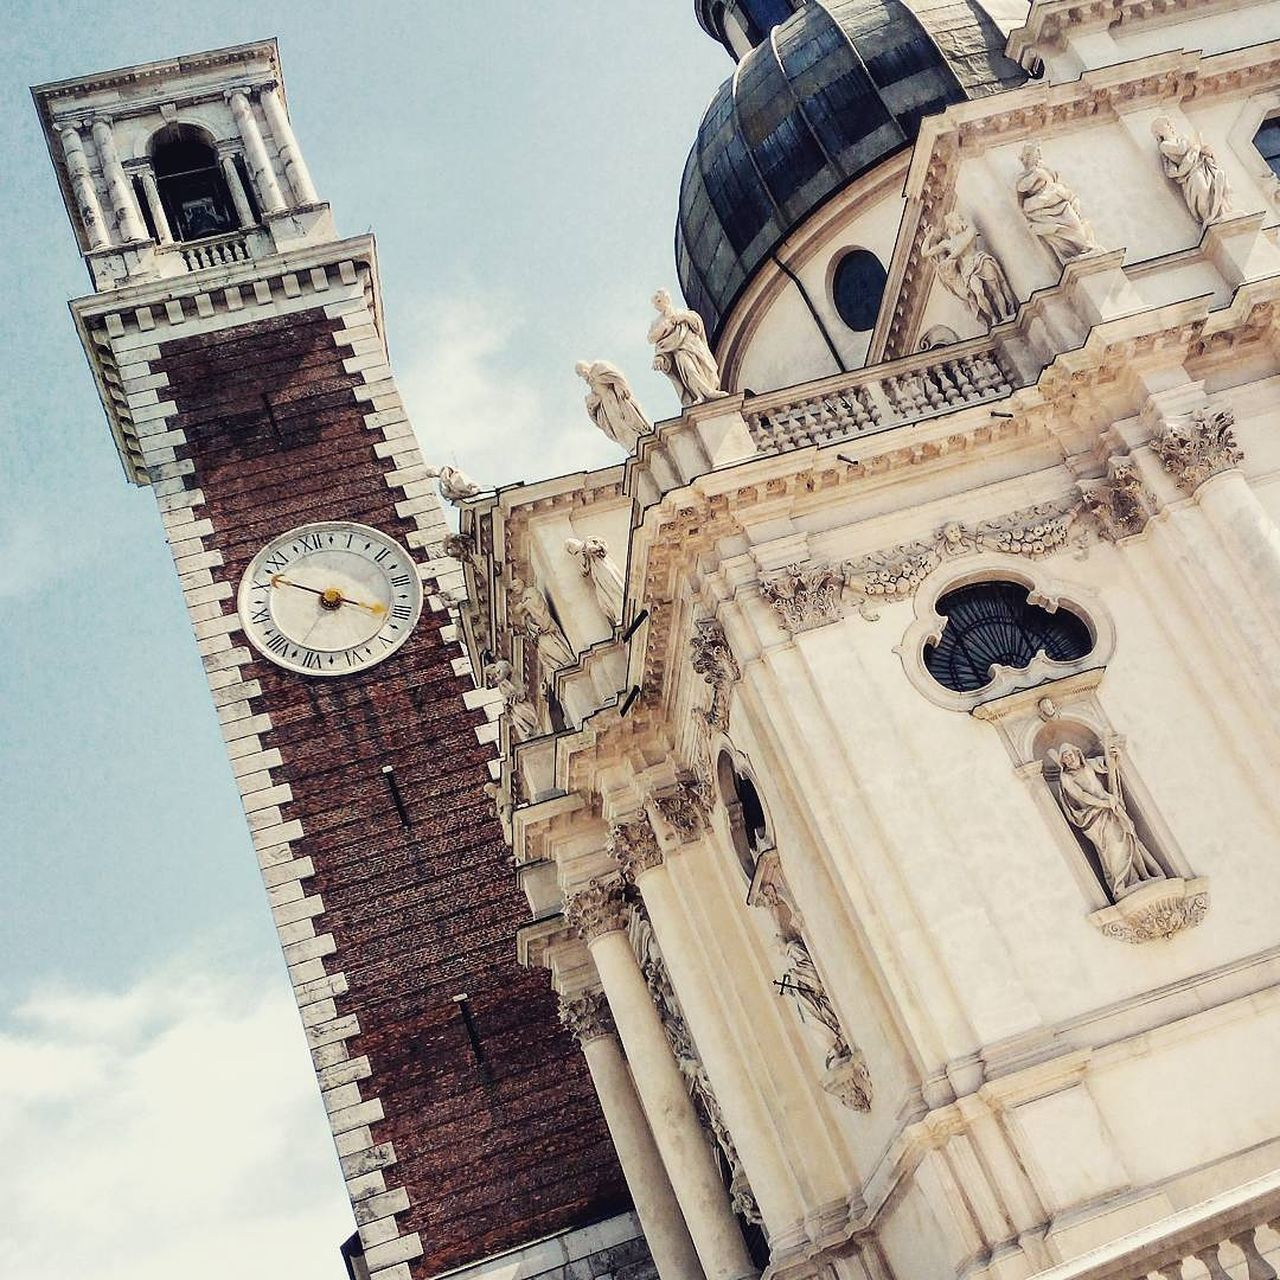 low angle view, building exterior, architecture, religion, built structure, place of worship, spirituality, day, outdoors, no people, sky, clock tower, bell tower, clock, travel destinations, history, bell, cloud - sky, time